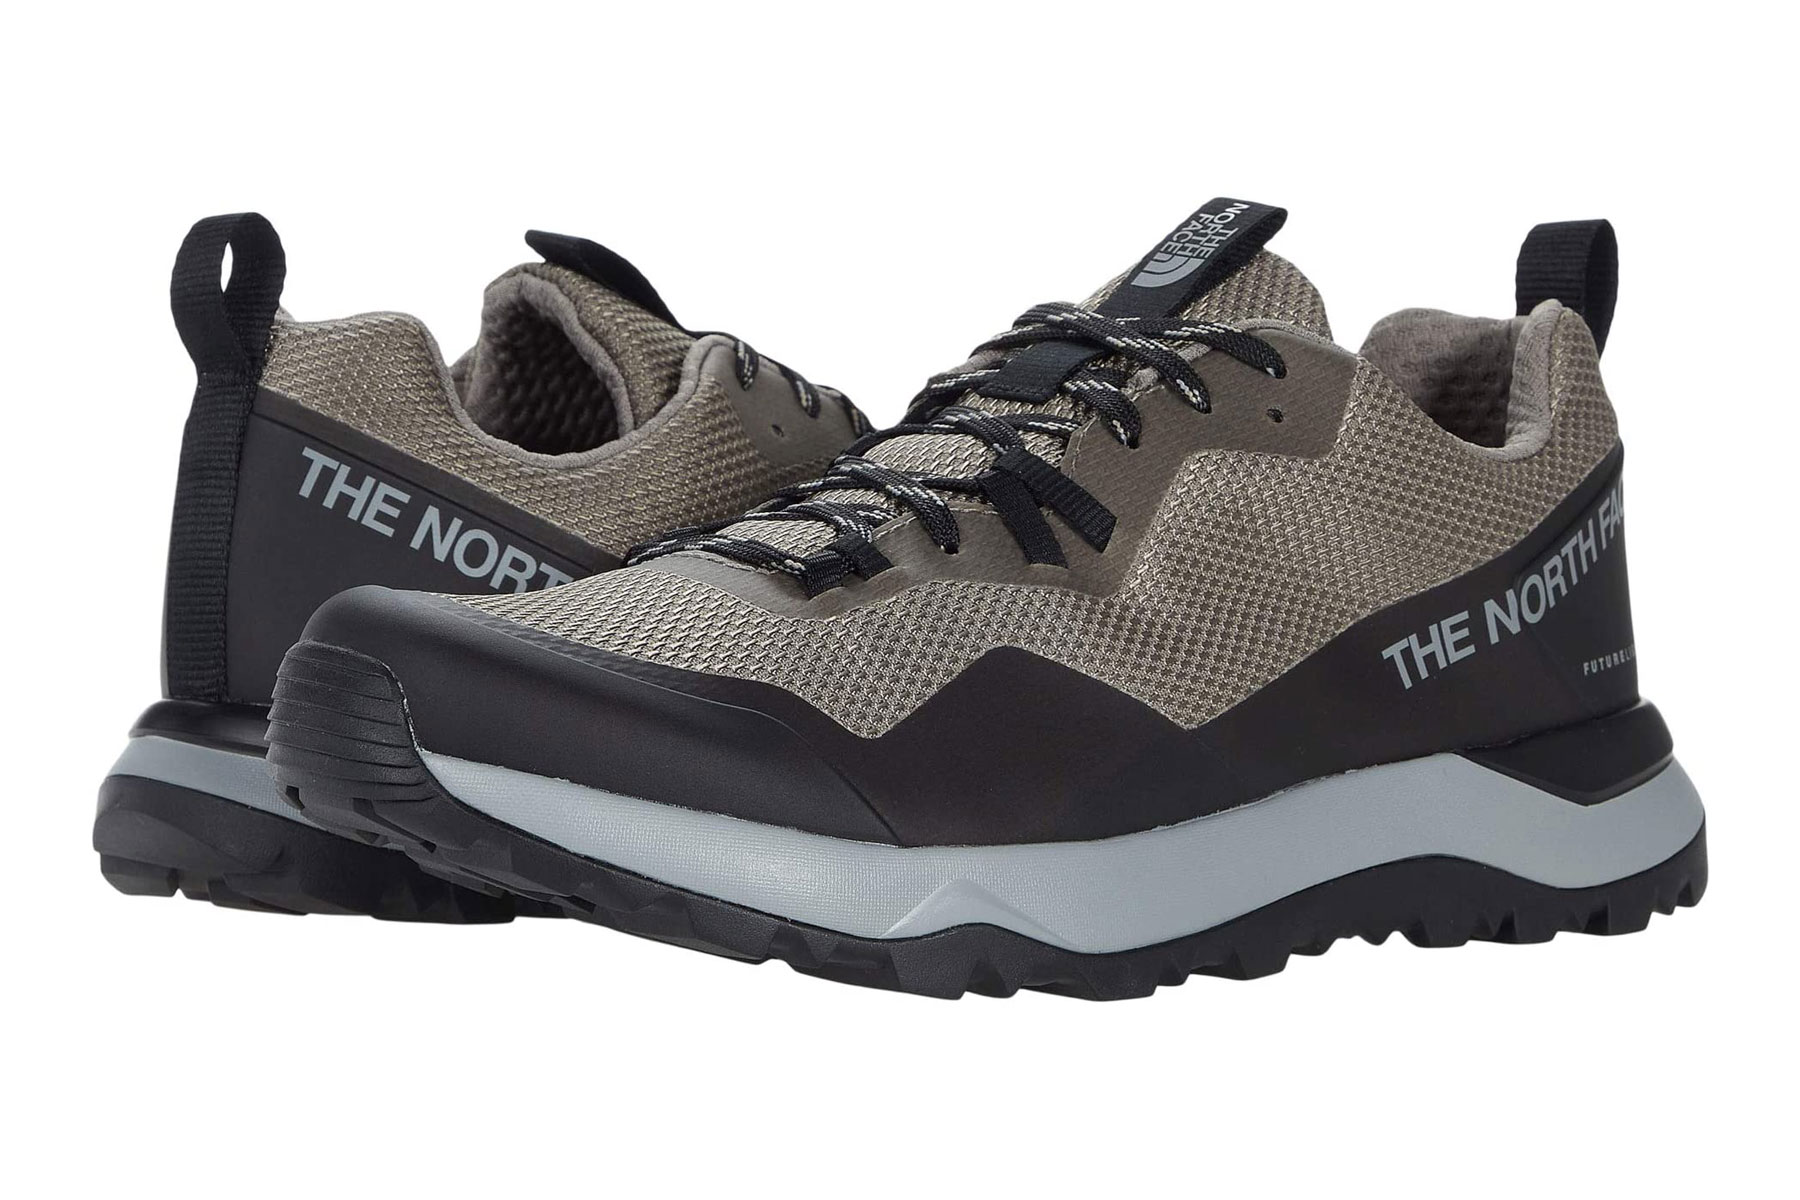 North Face grey hiking shoes